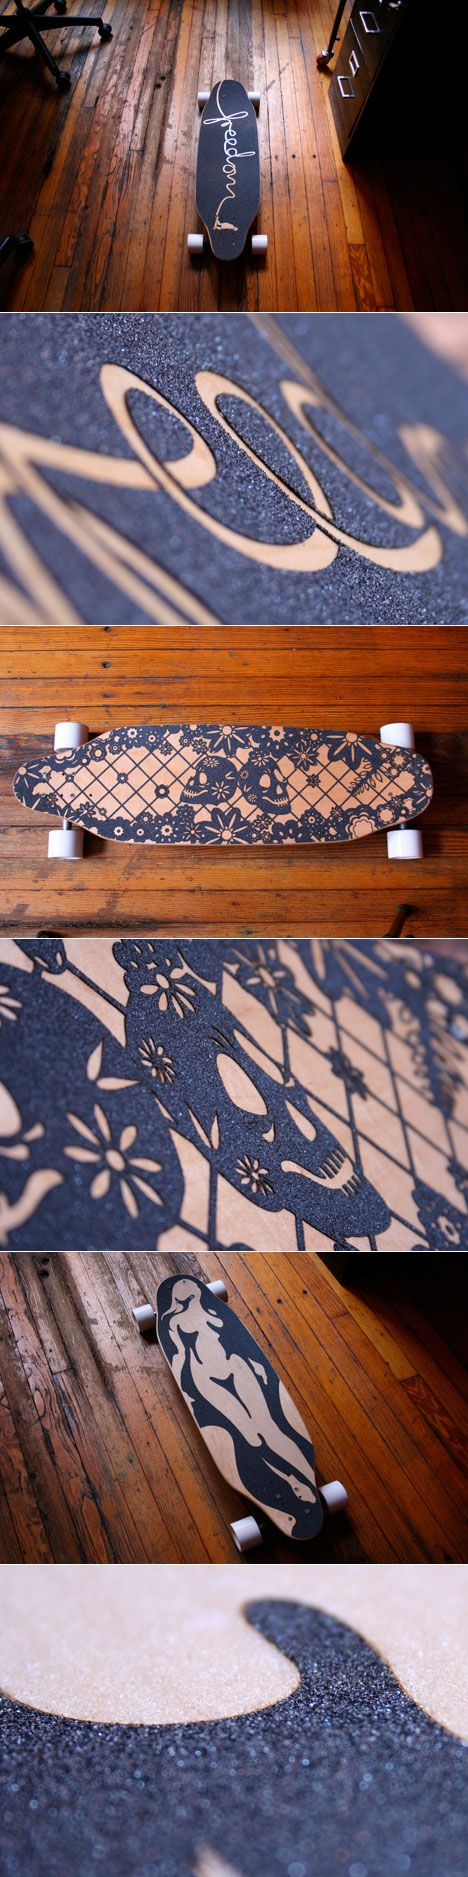 As a longboarder, I know how hard it is to make a grip exactly how you want it. These are perfection of a skateboard.